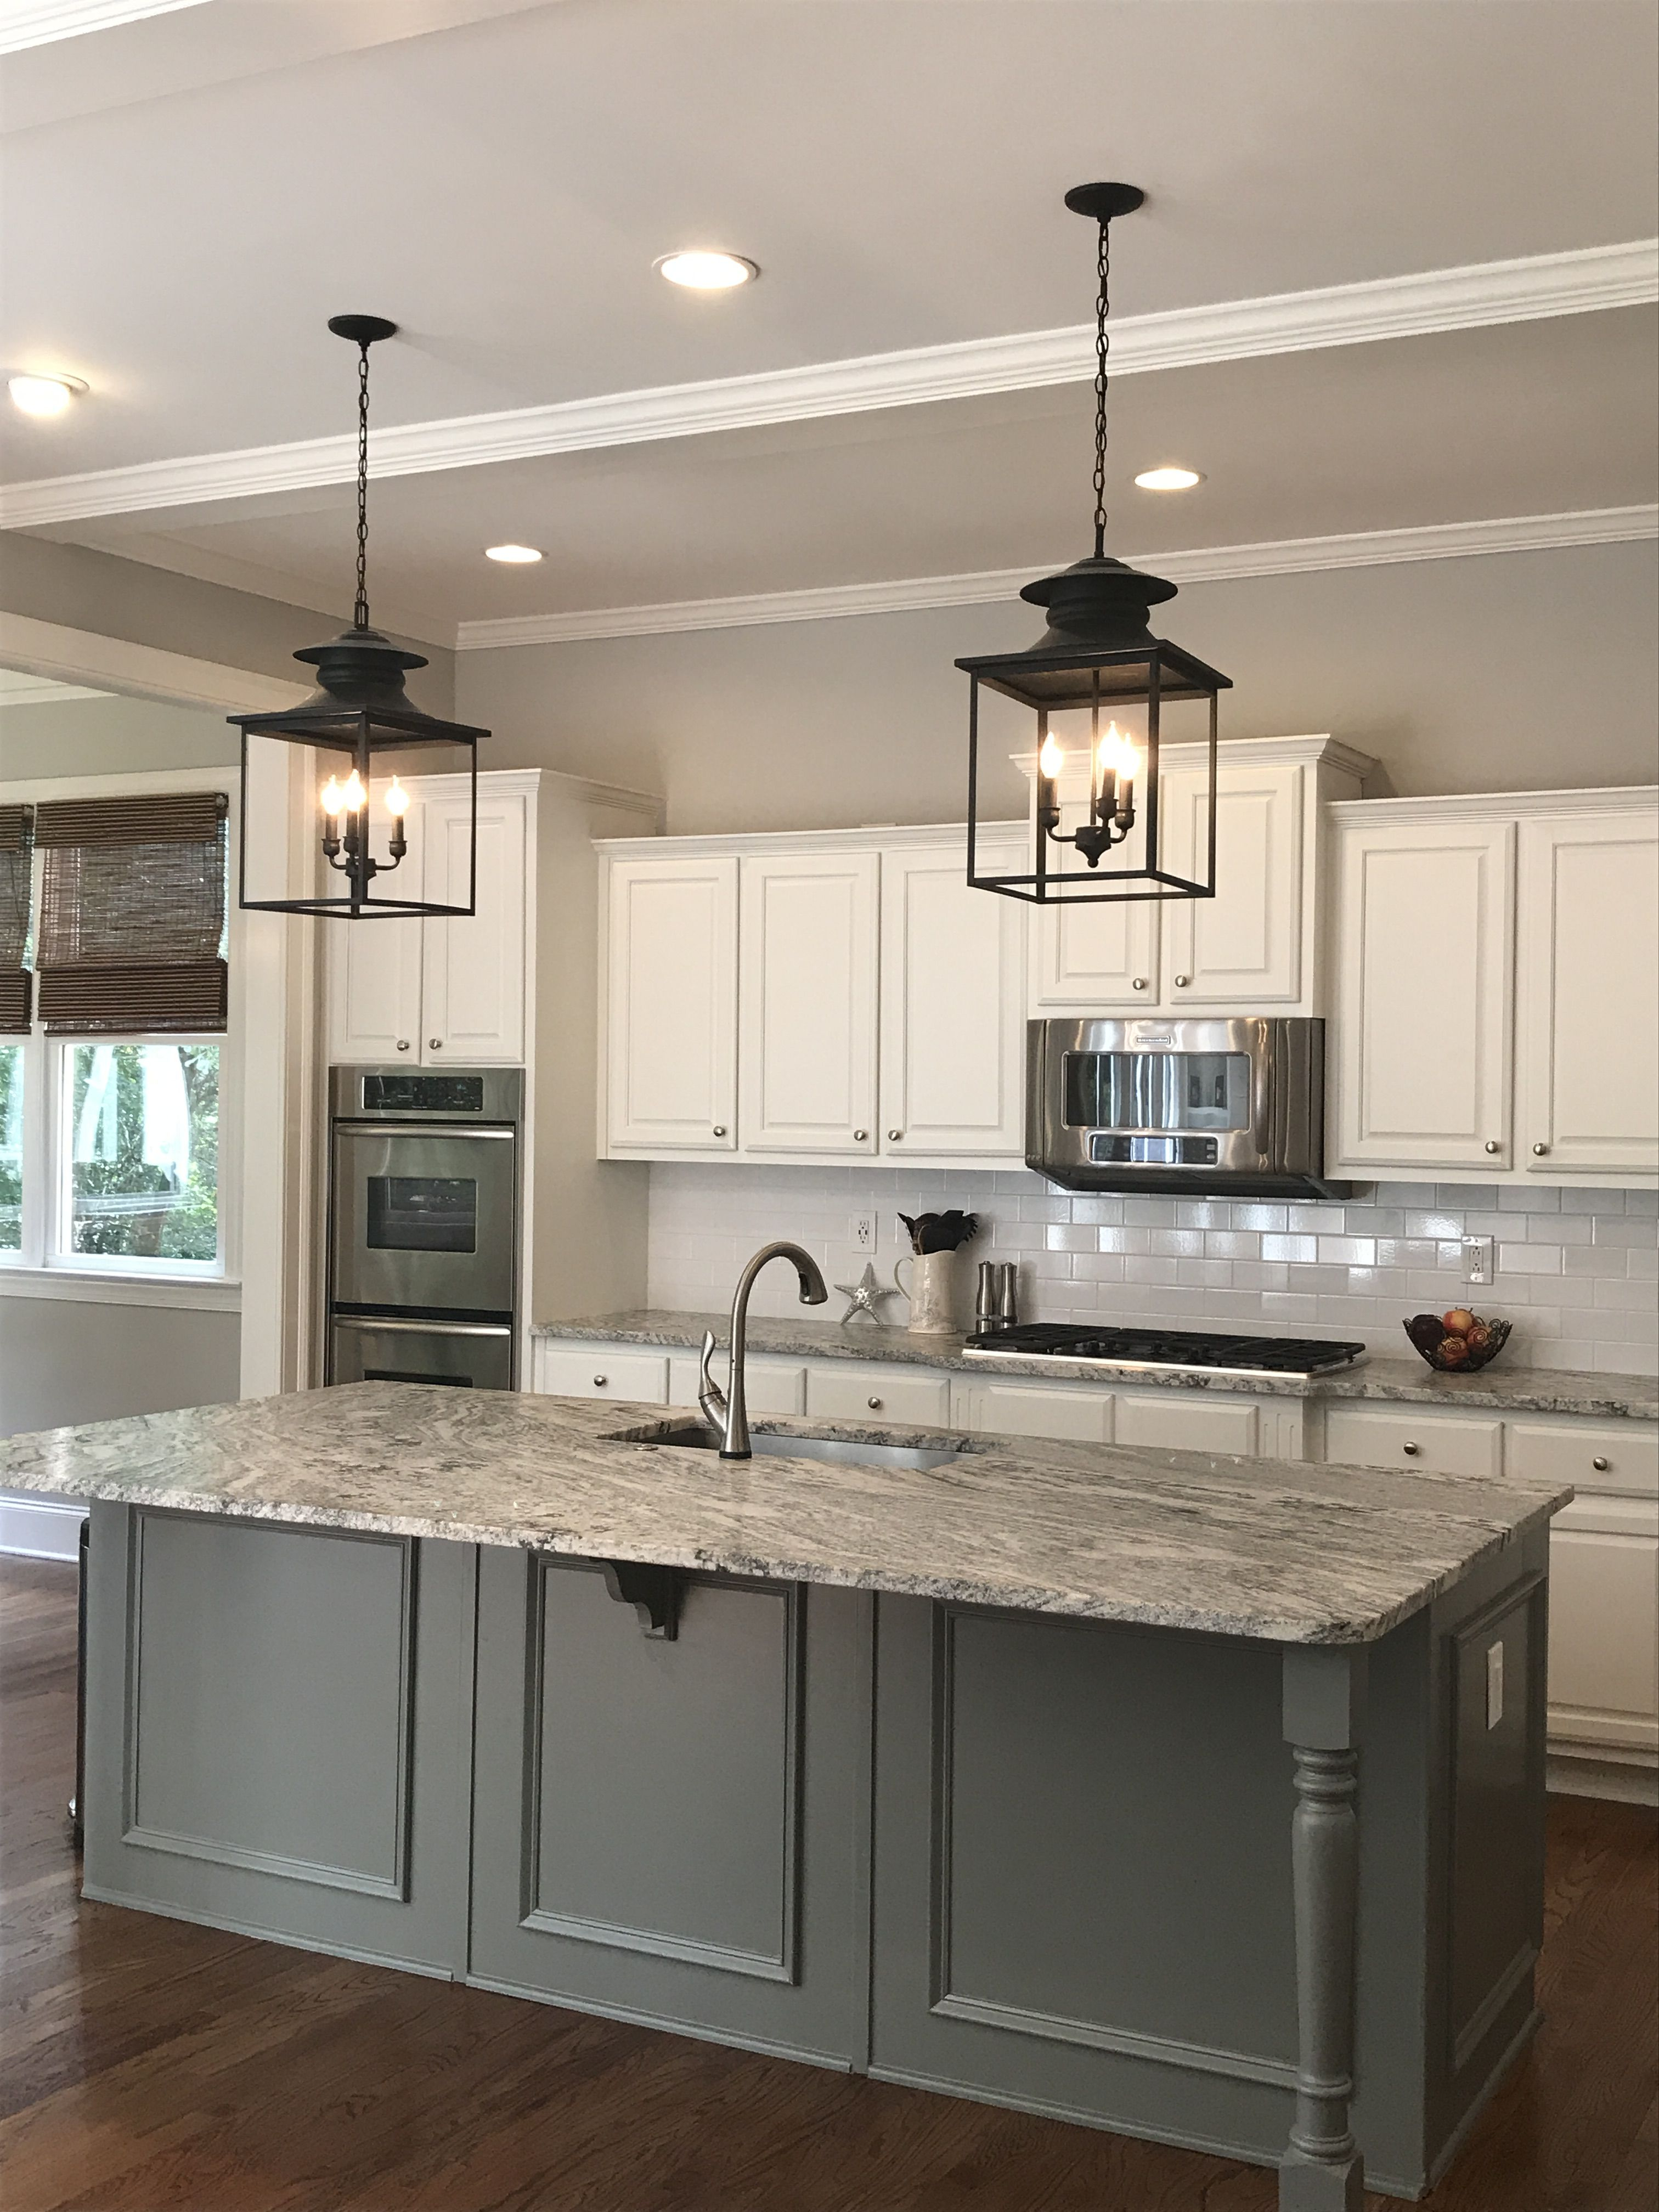 walls bm stonington gray cabinets trim ceiling bm chantilly lace island bm s grey on kitchen cabinets trim id=15518